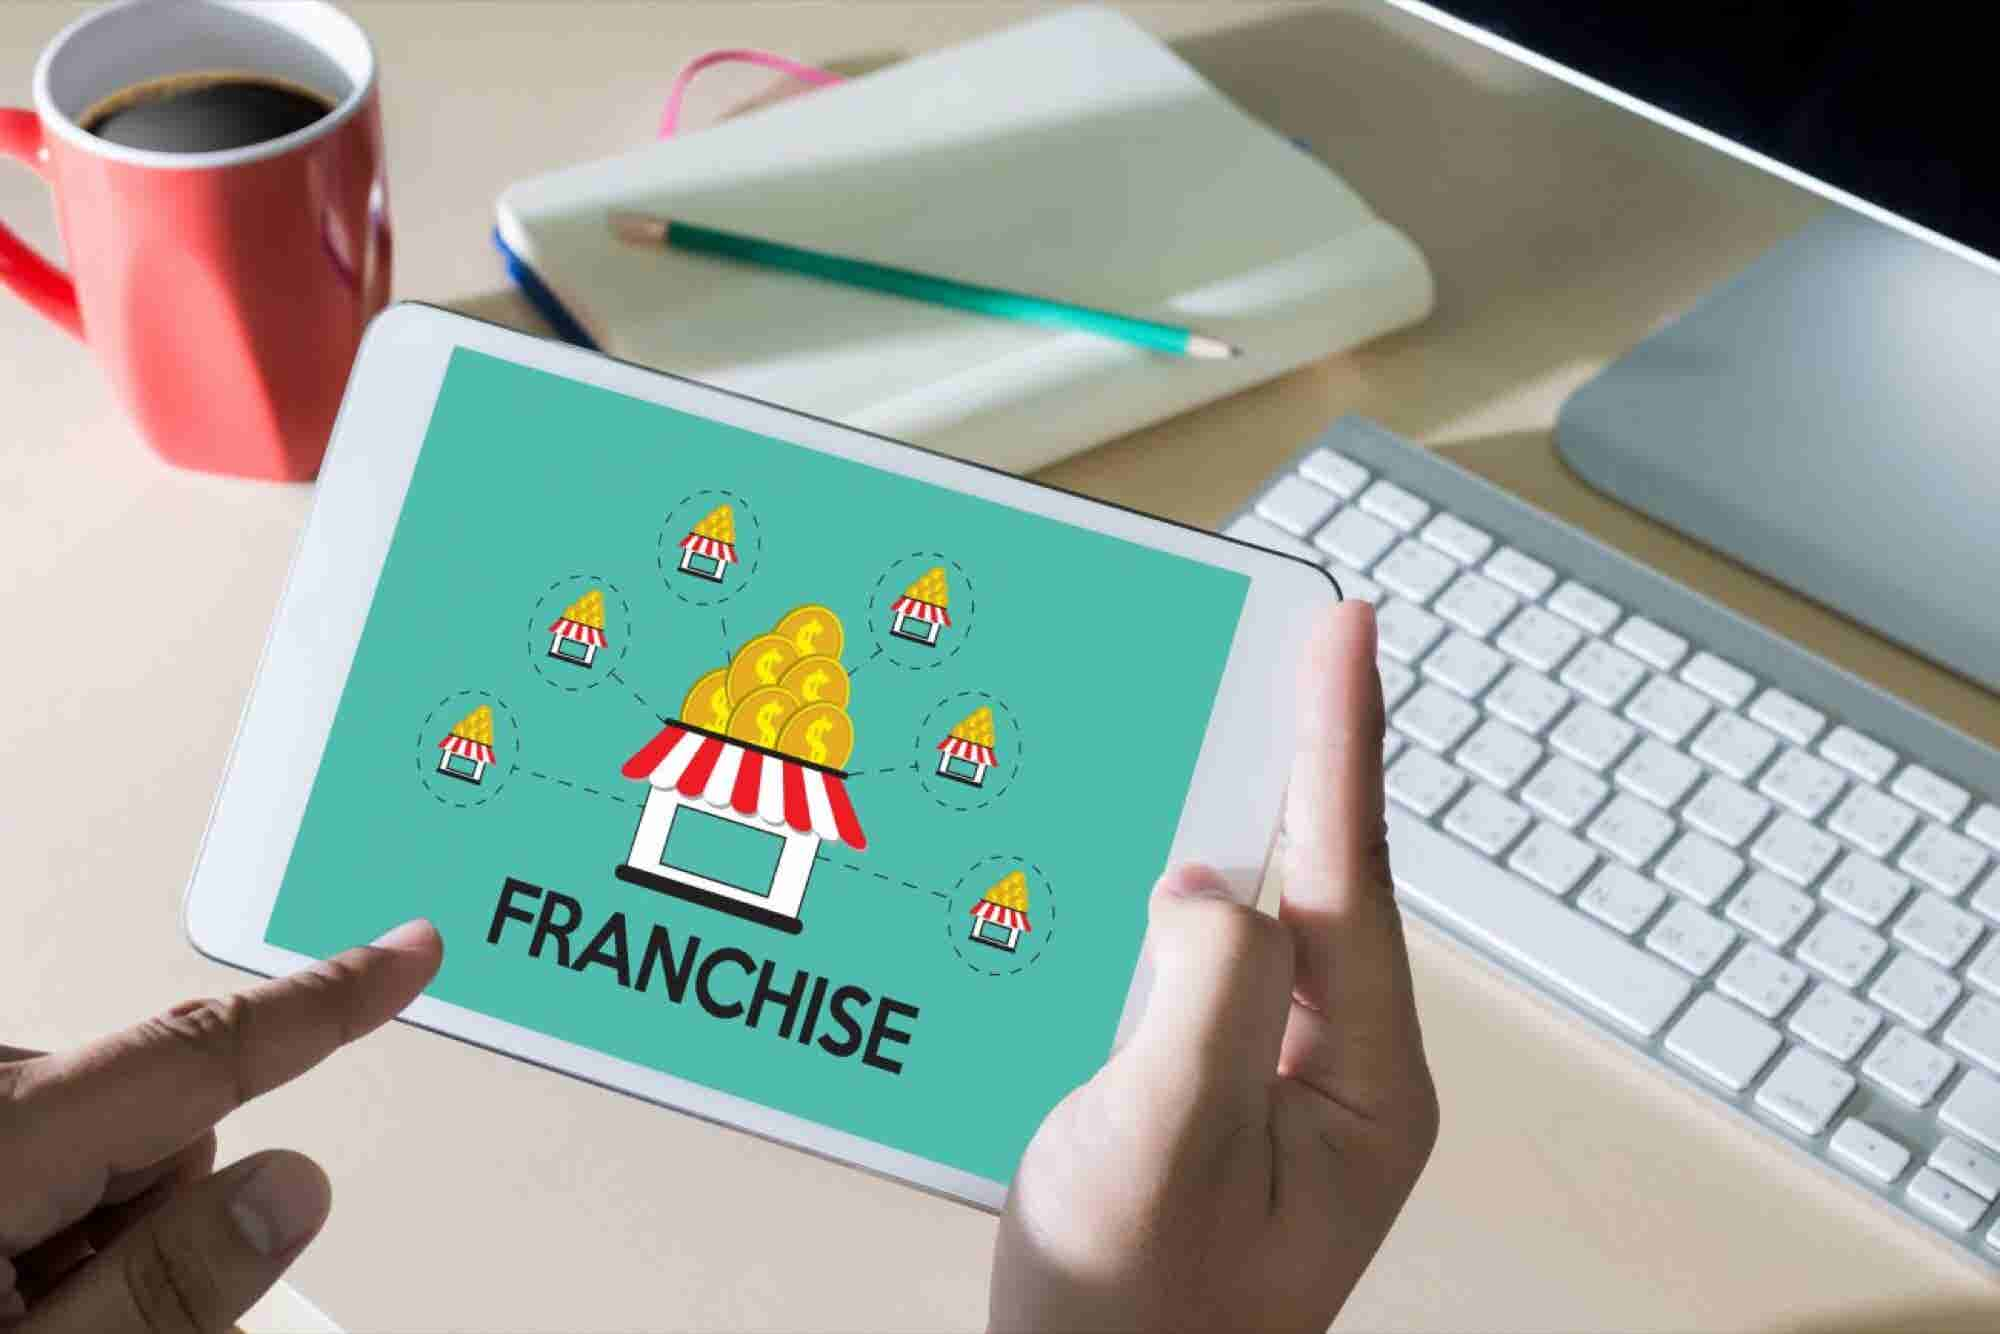 5 Restaurant Franchises That Will Cost You at Least $1 Million